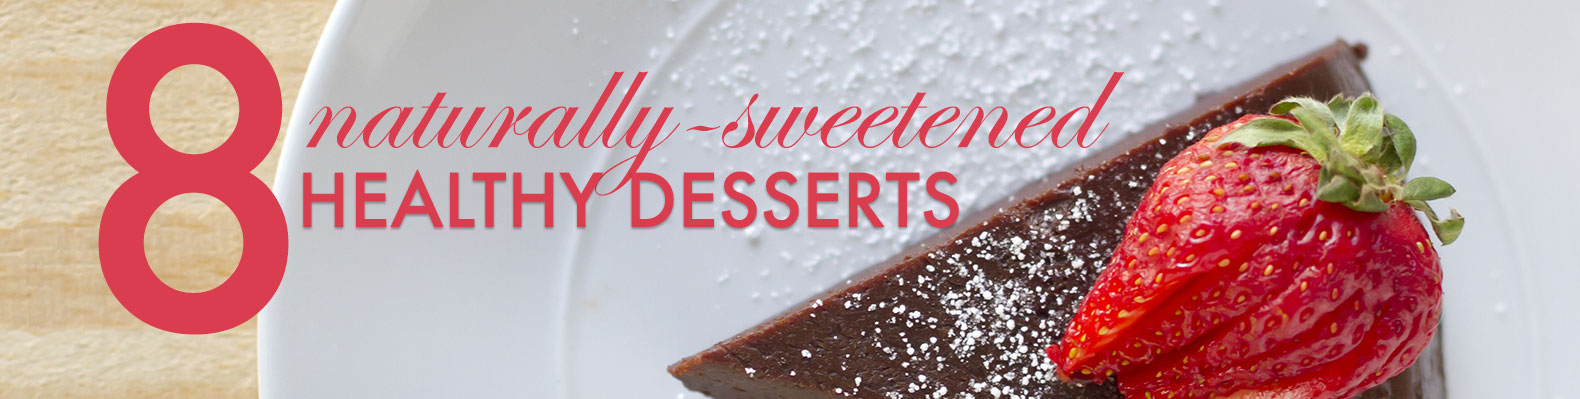 8 Healthy Holiday Desserts Made With No Refined Sugar